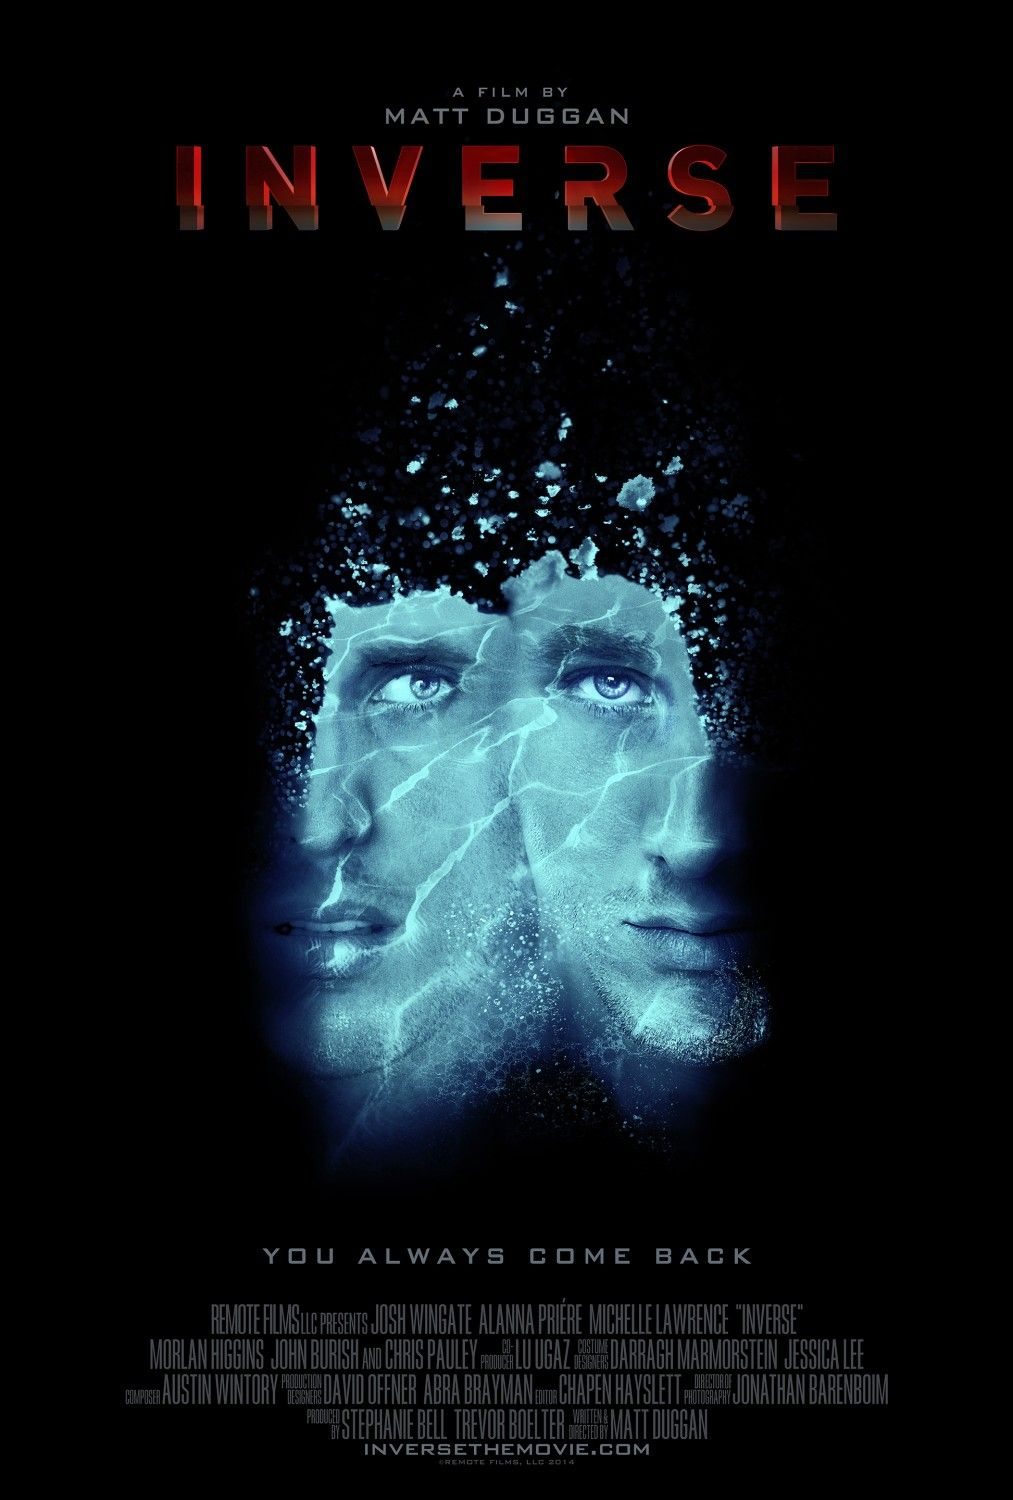 Inverse Is An Infinitely Thoughtful And Riveting Sci Fi Movie Sci Fi Movies Science Fiction Movies Movie Info